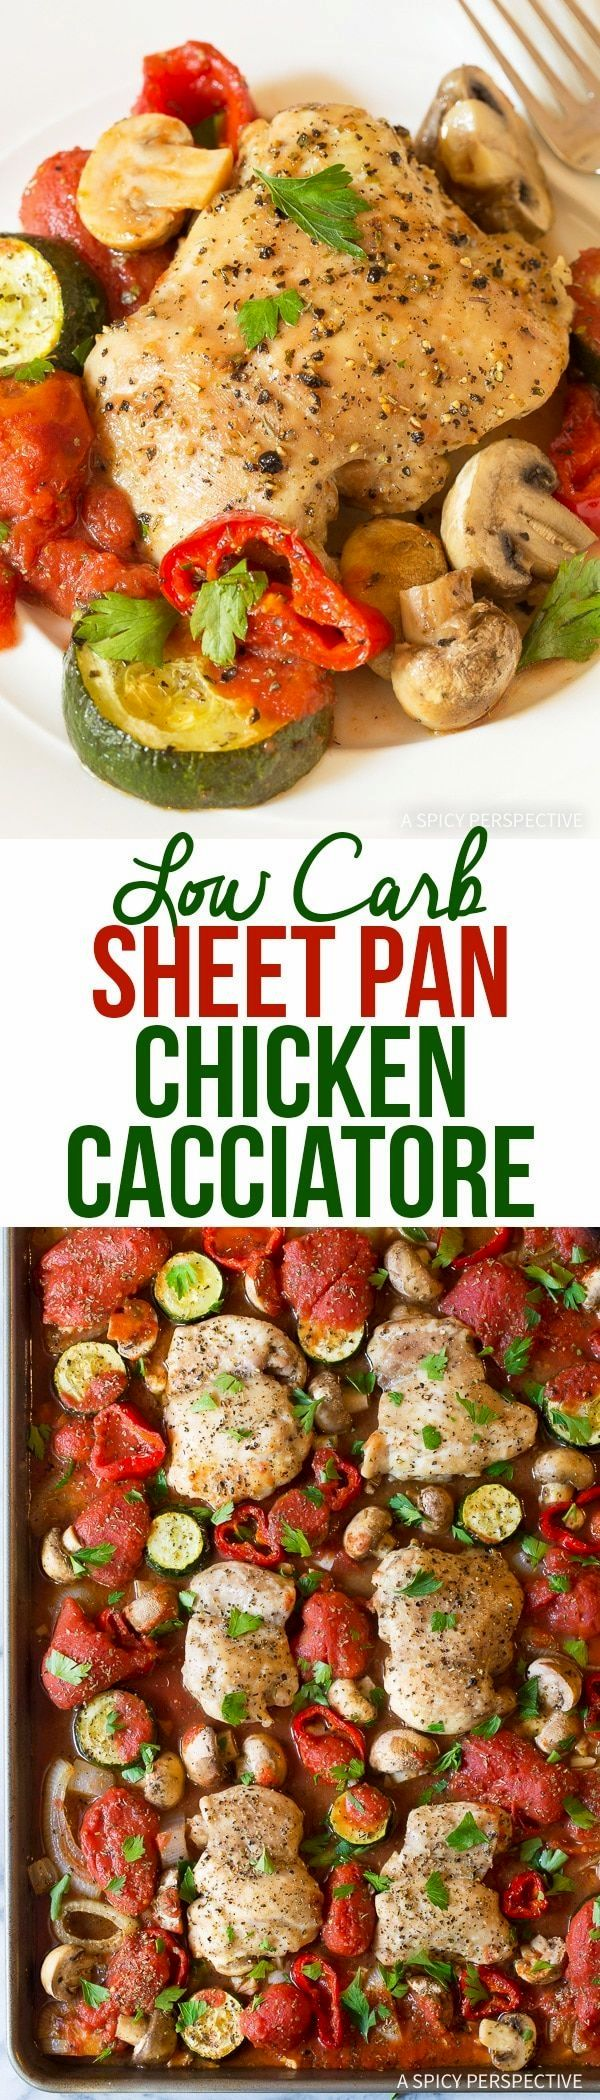 Low Carb Sheet Pan Chicken Cacciatore Recipe - A quick and easy Italian-style cacciatore recipe that is true comfort food, even without the pasta! via @spicyperspectiv